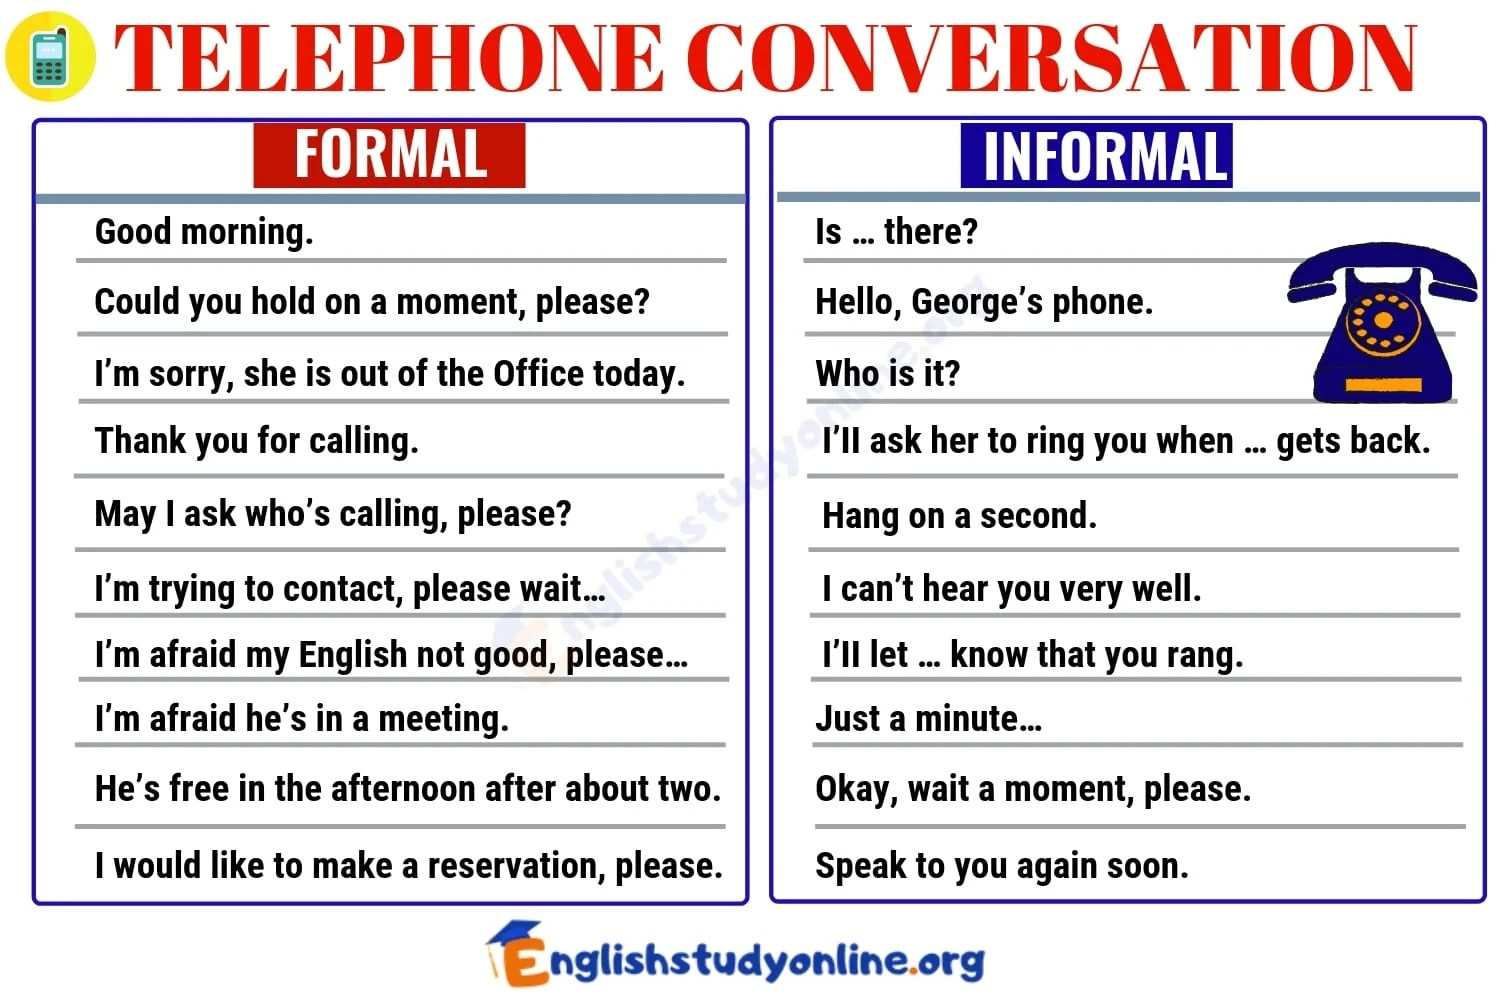 Telephone Conversation Most Commonly Used Phrases For The